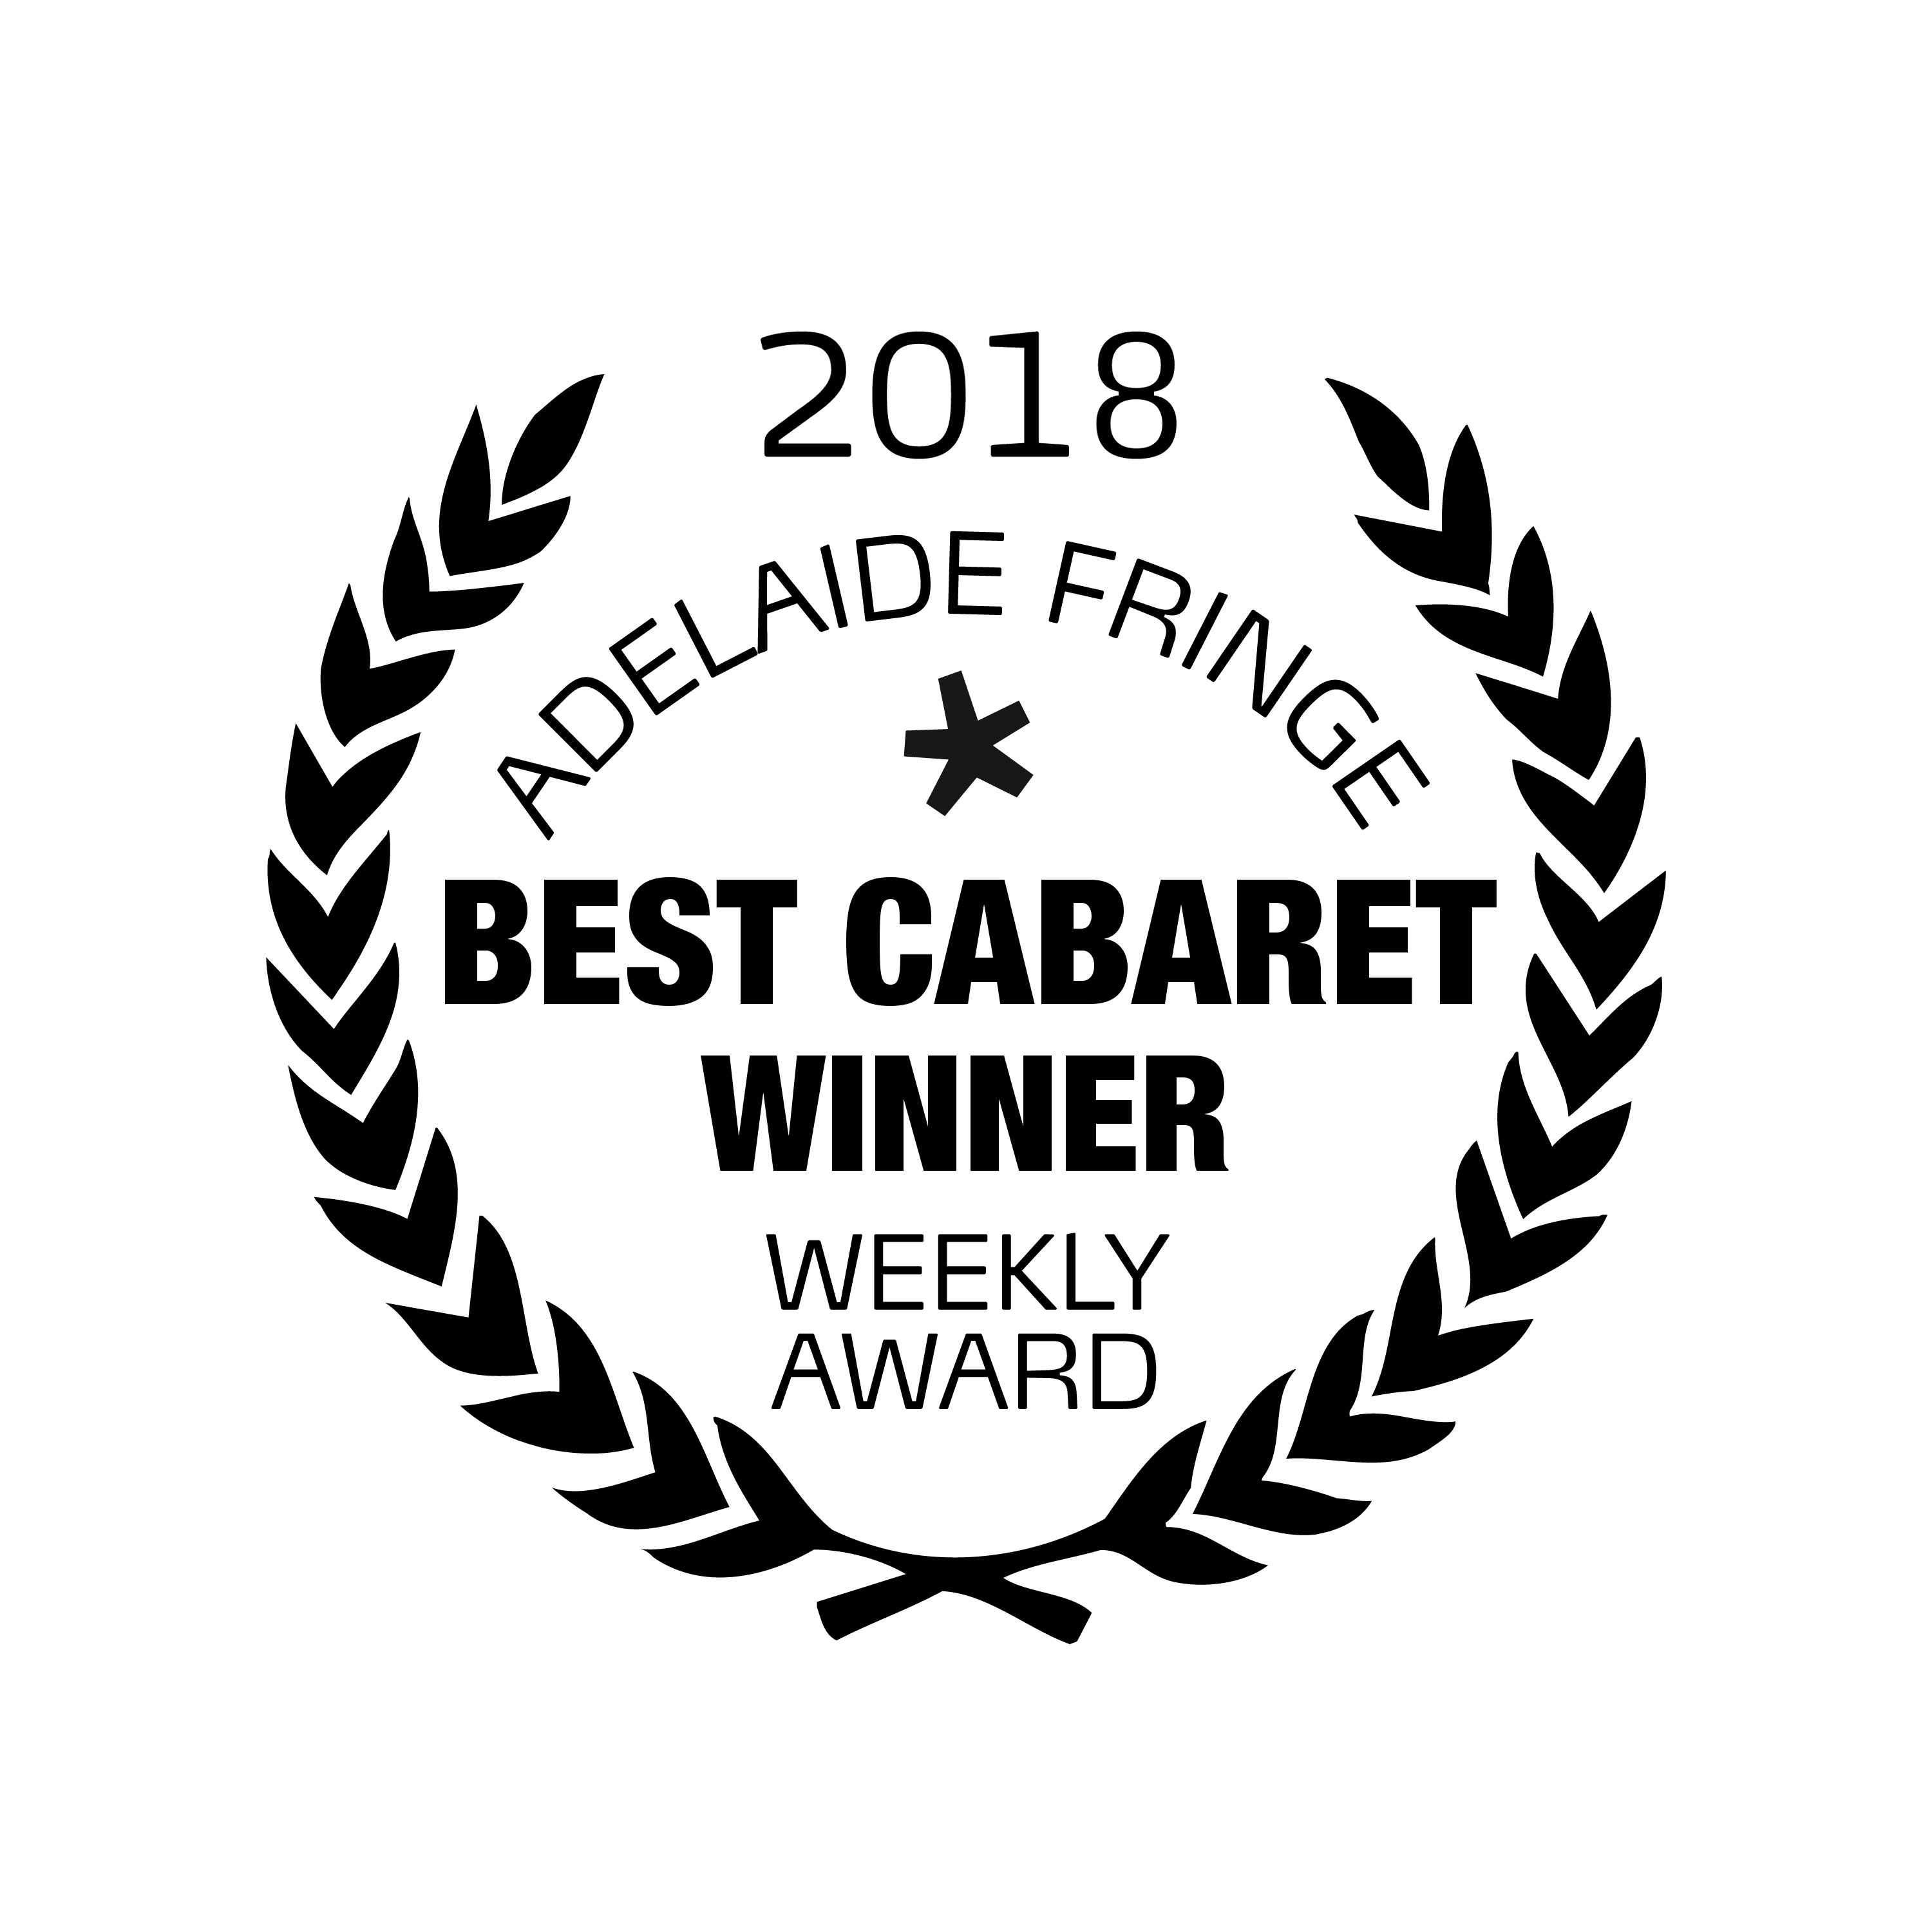 Adelaide Fringe Best Cabaret Laurels